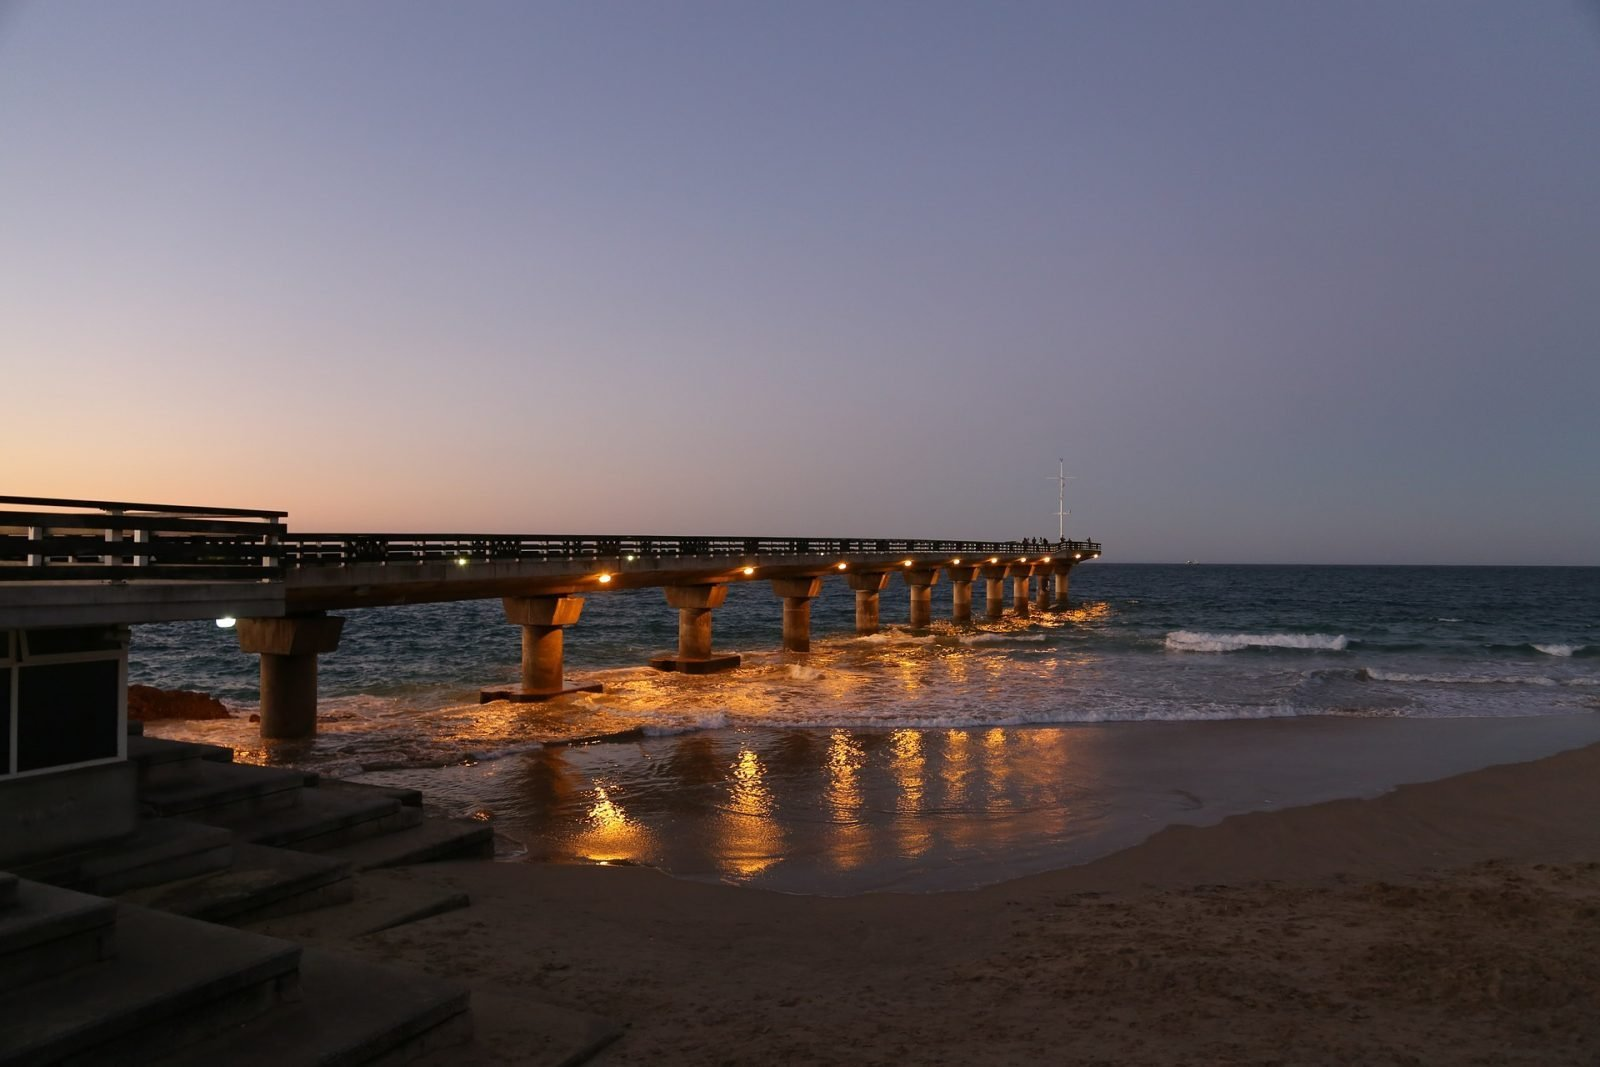 Port Elizabeth, South Africa